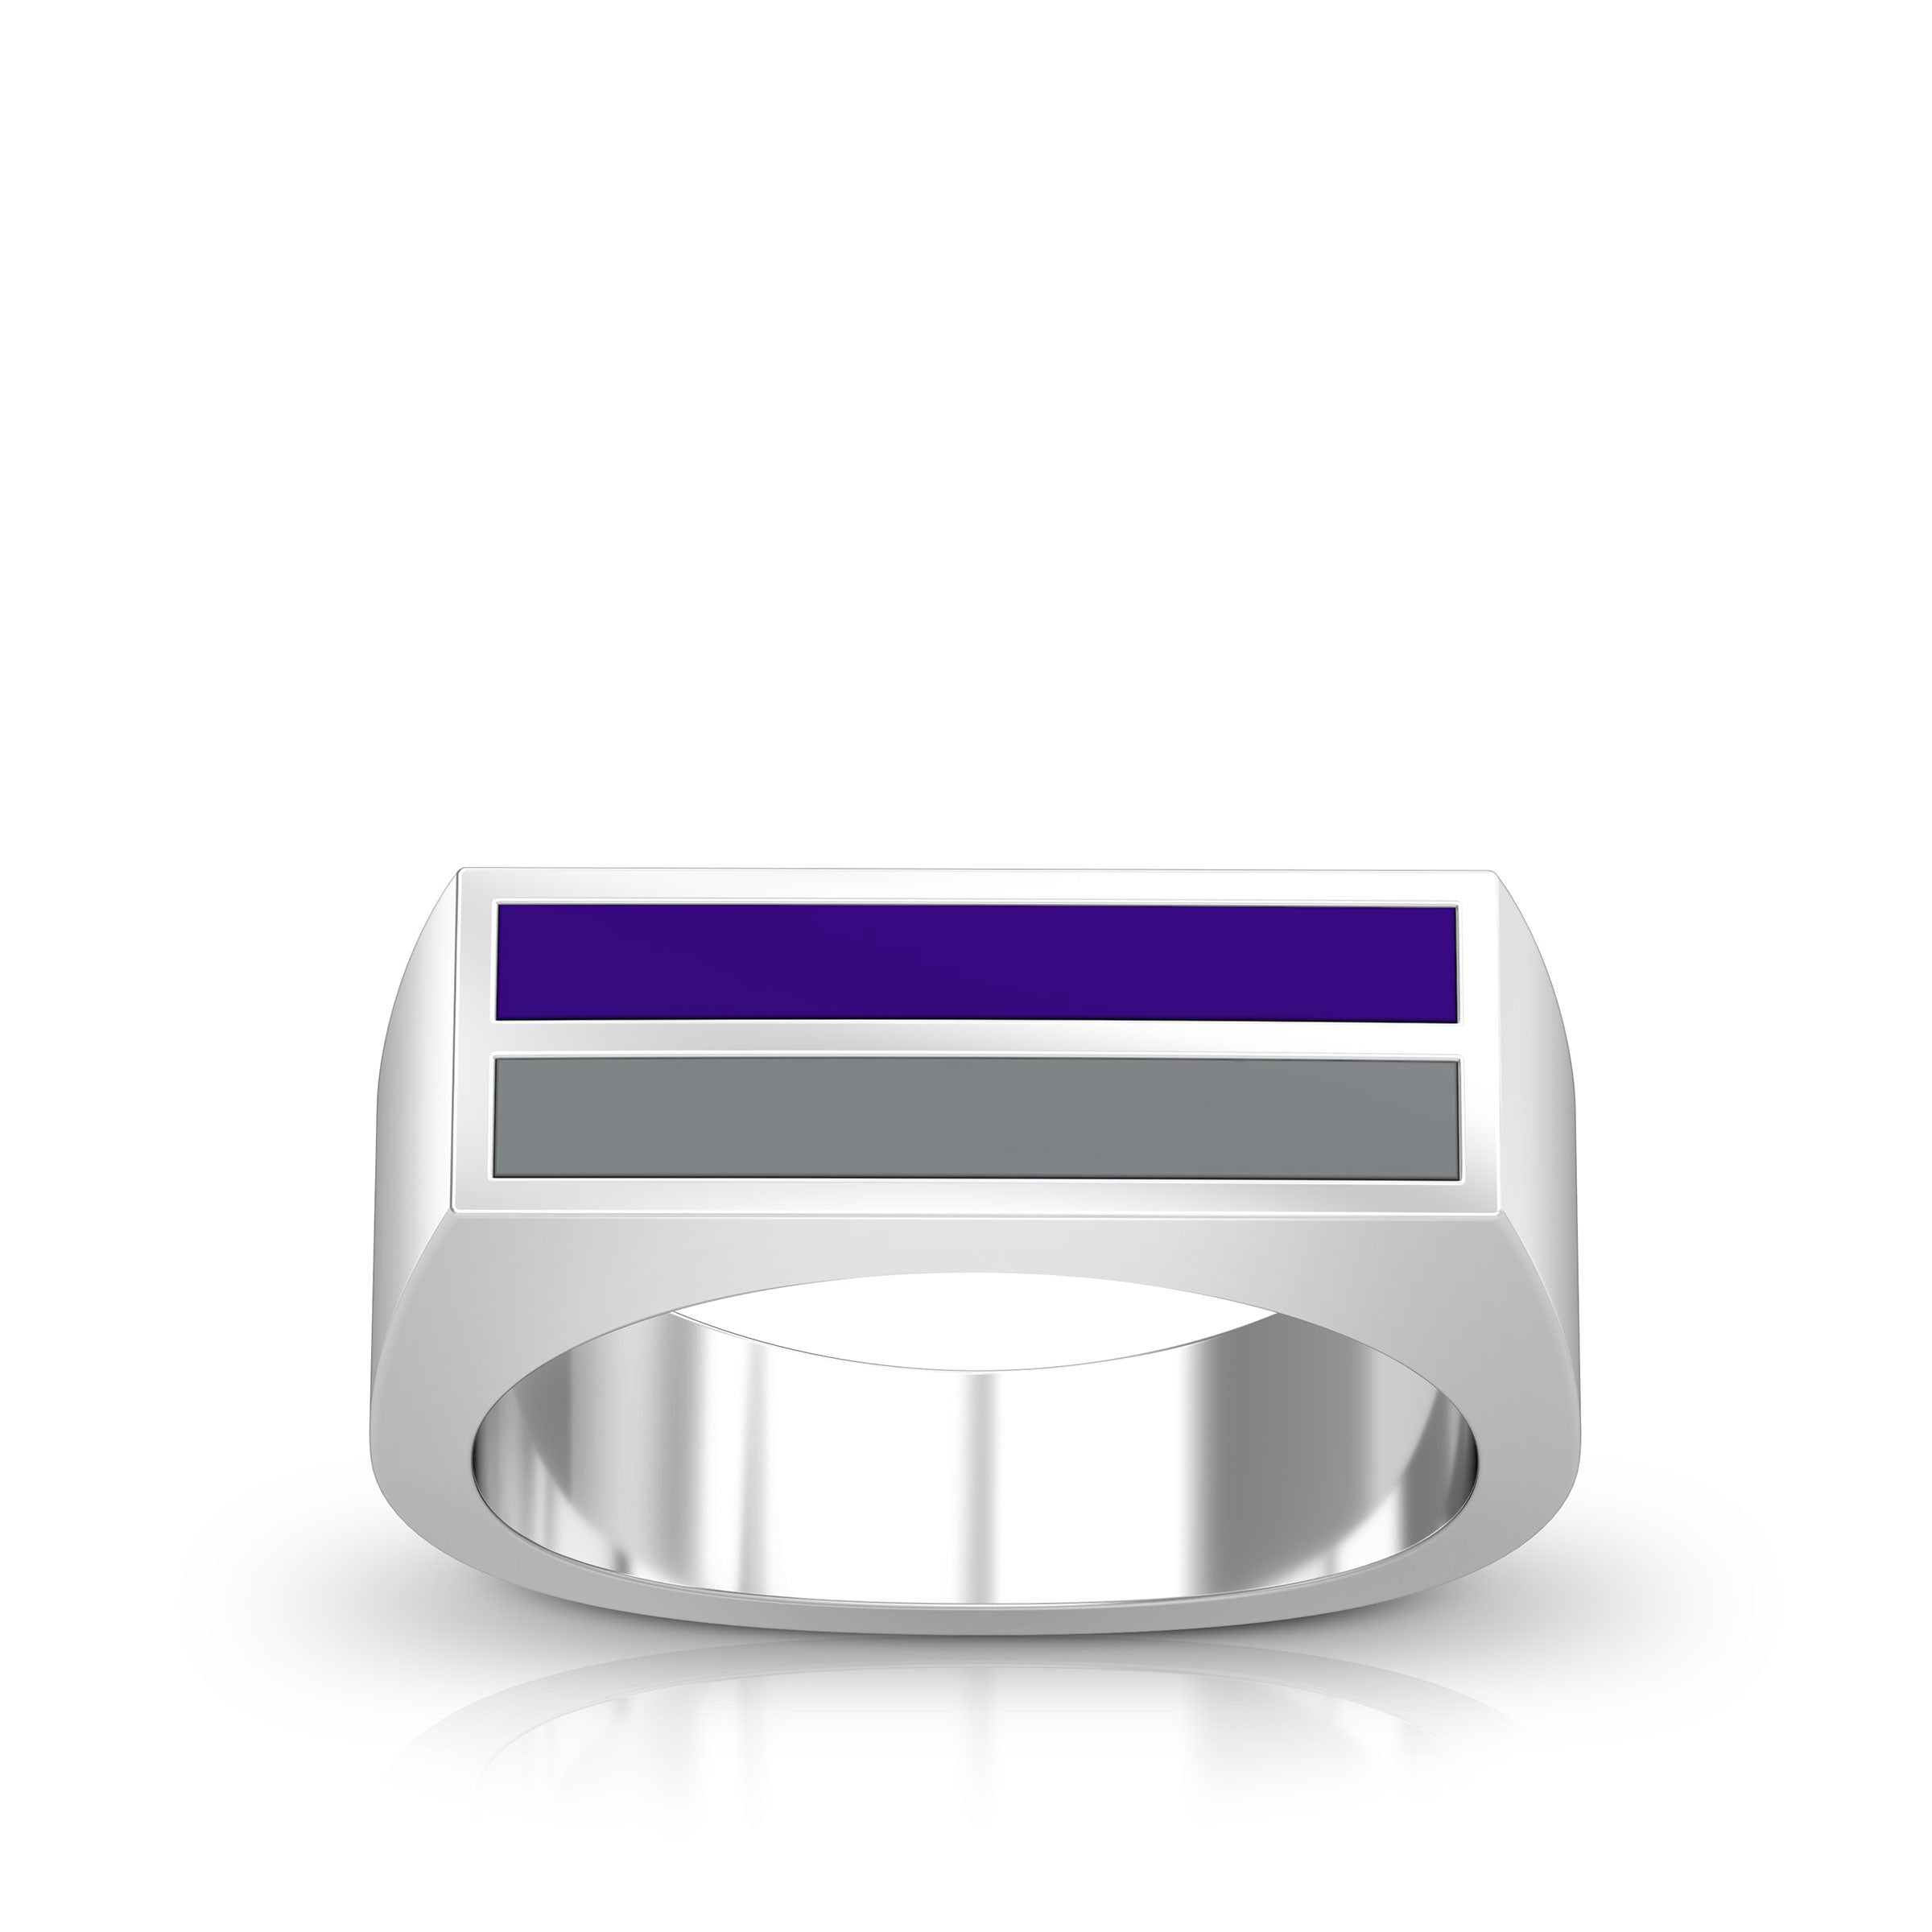 Enamel Ring in Purple and Light Grey Size 8